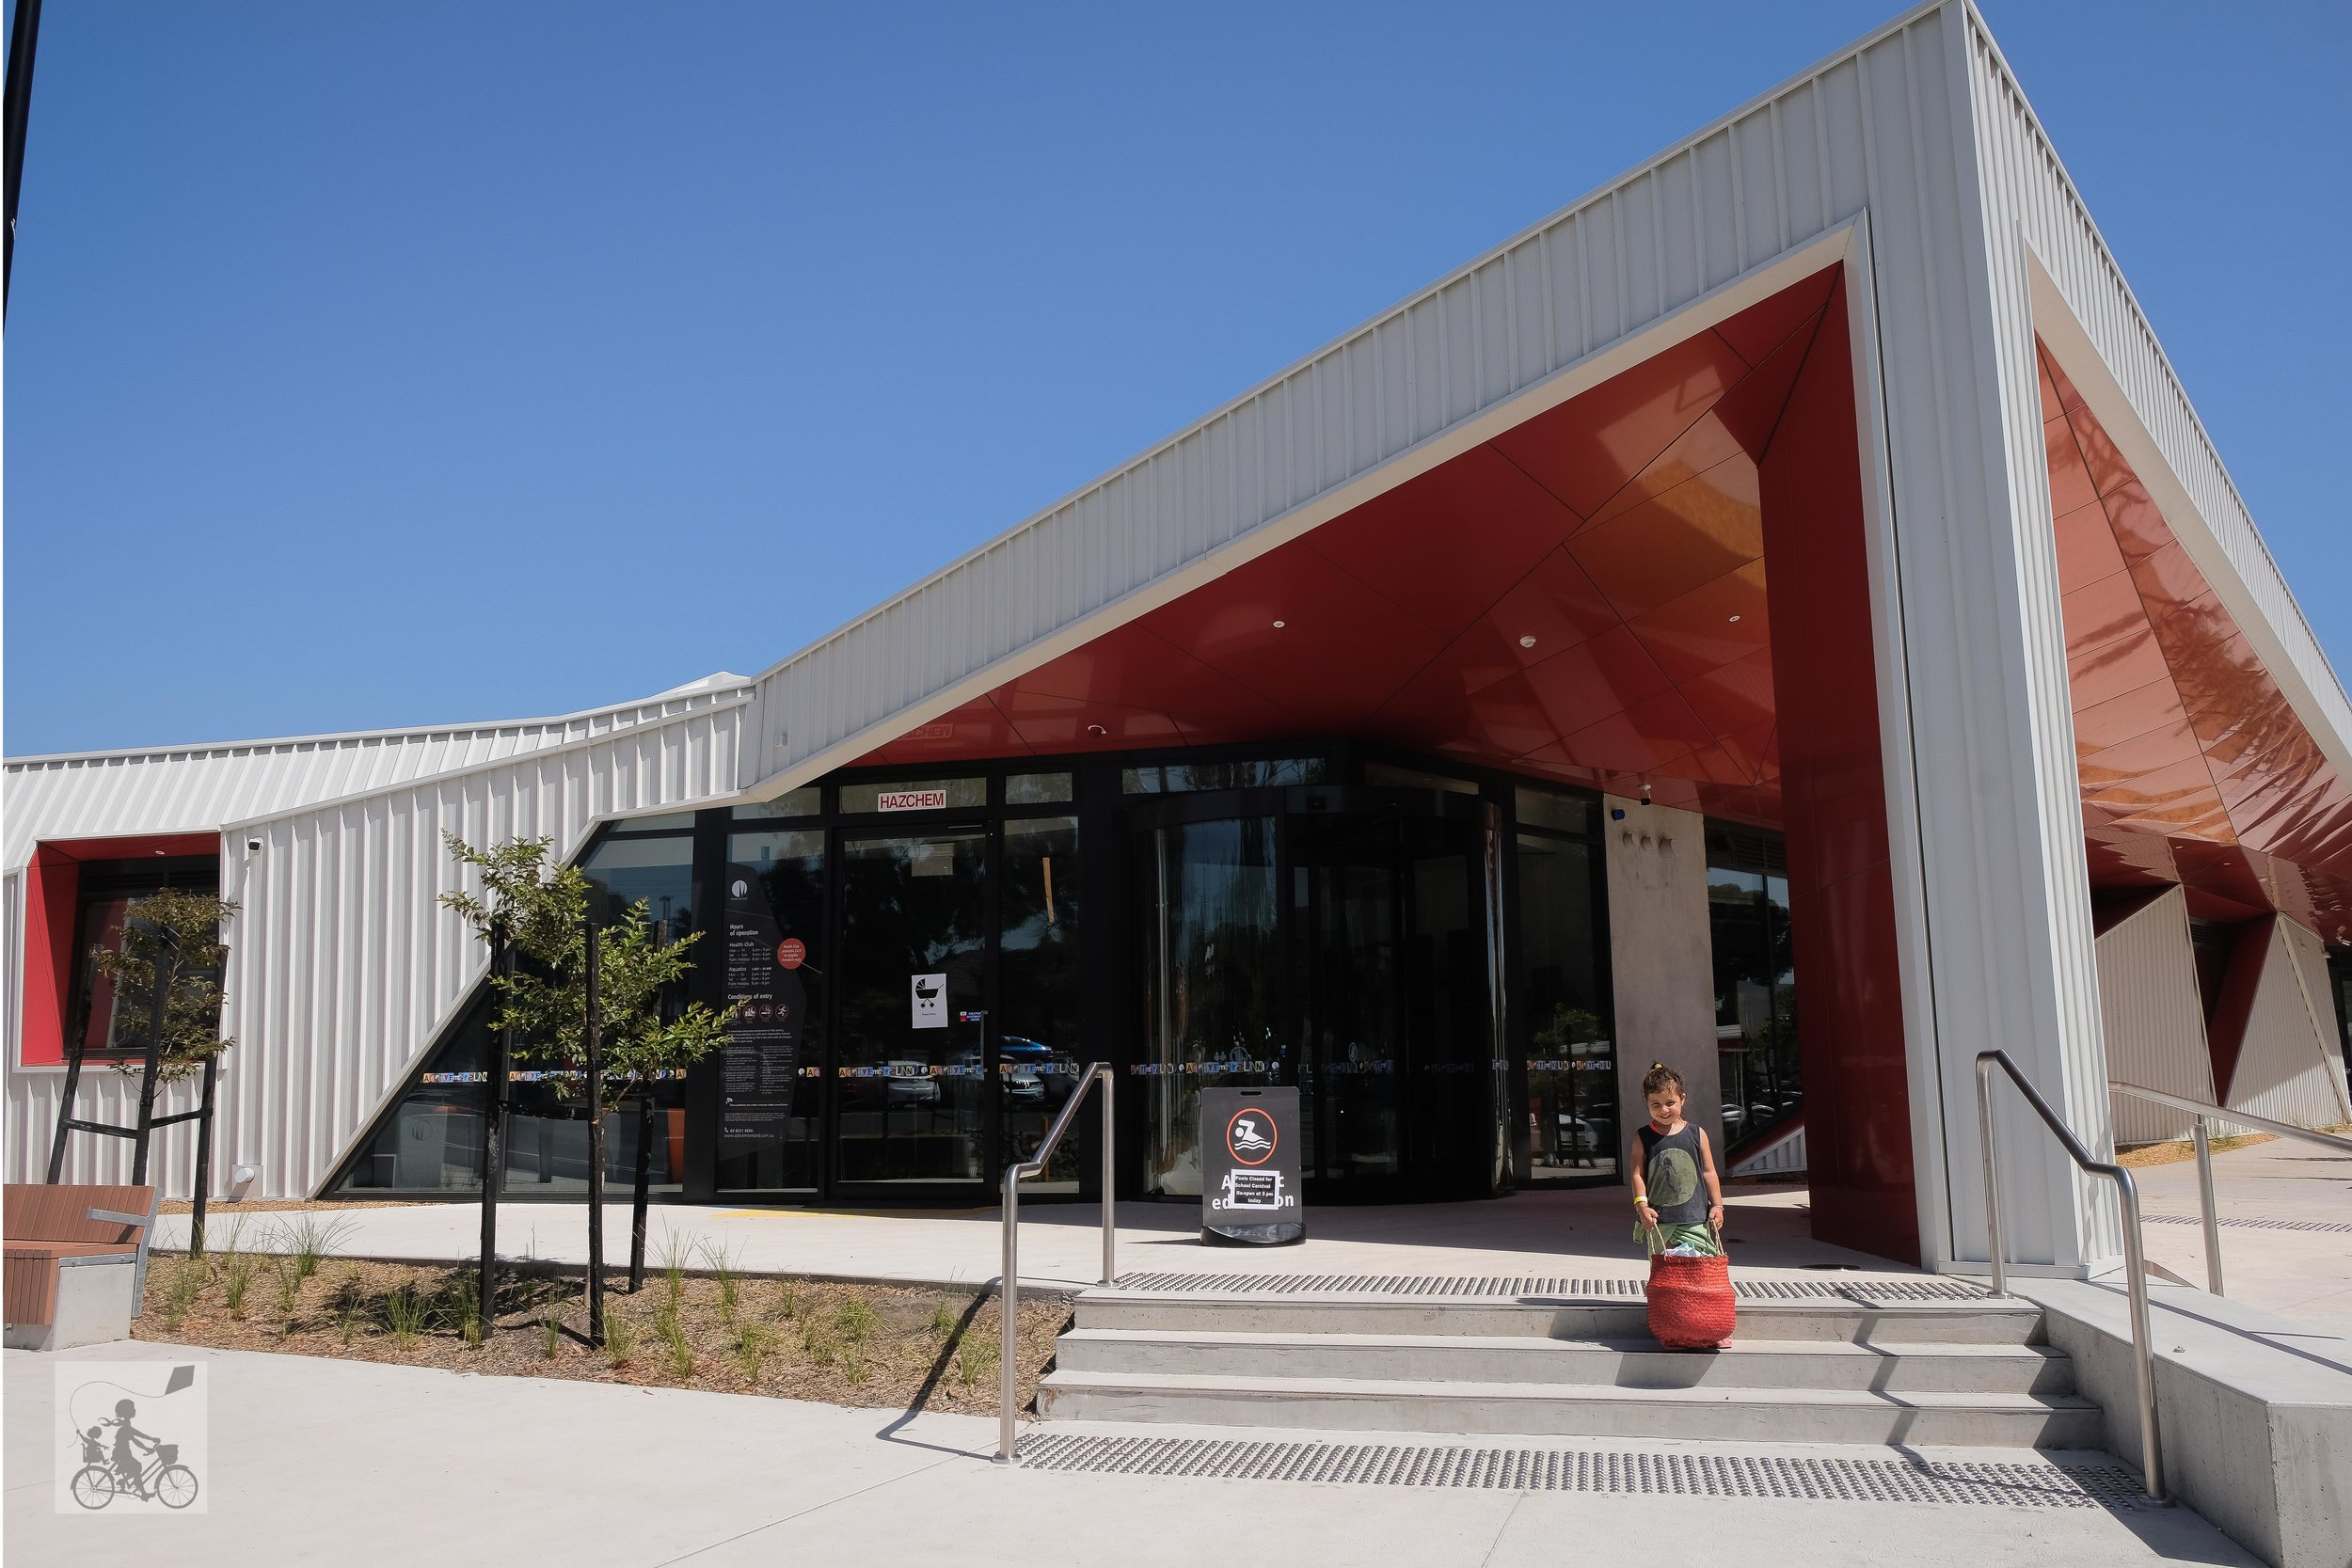 oak park sports and aquatic centre, oak park - mamma knows north